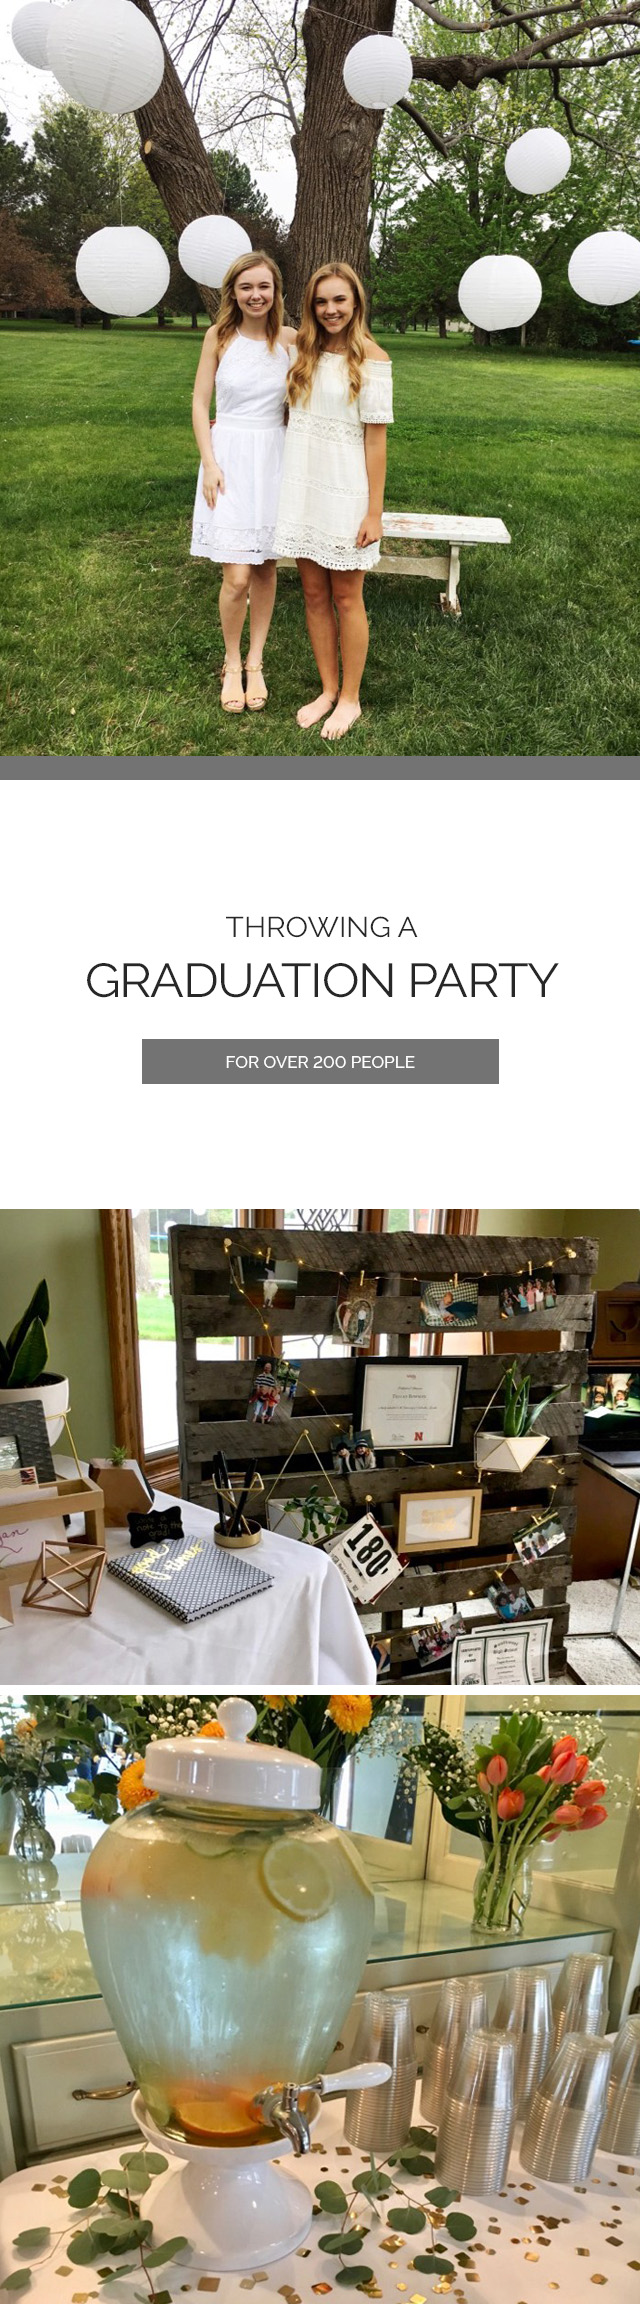 Graduation Party Decor